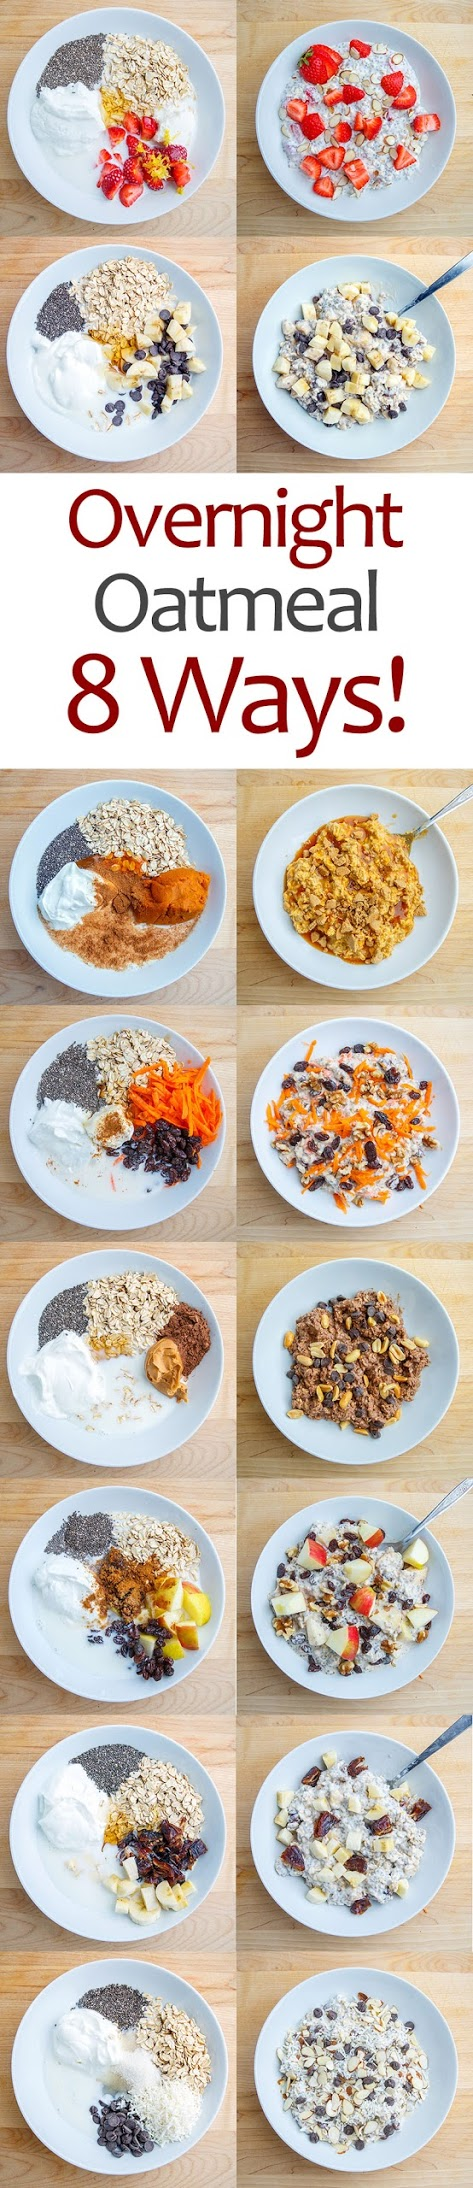 Overnight Oatmeal – 8 Ways!